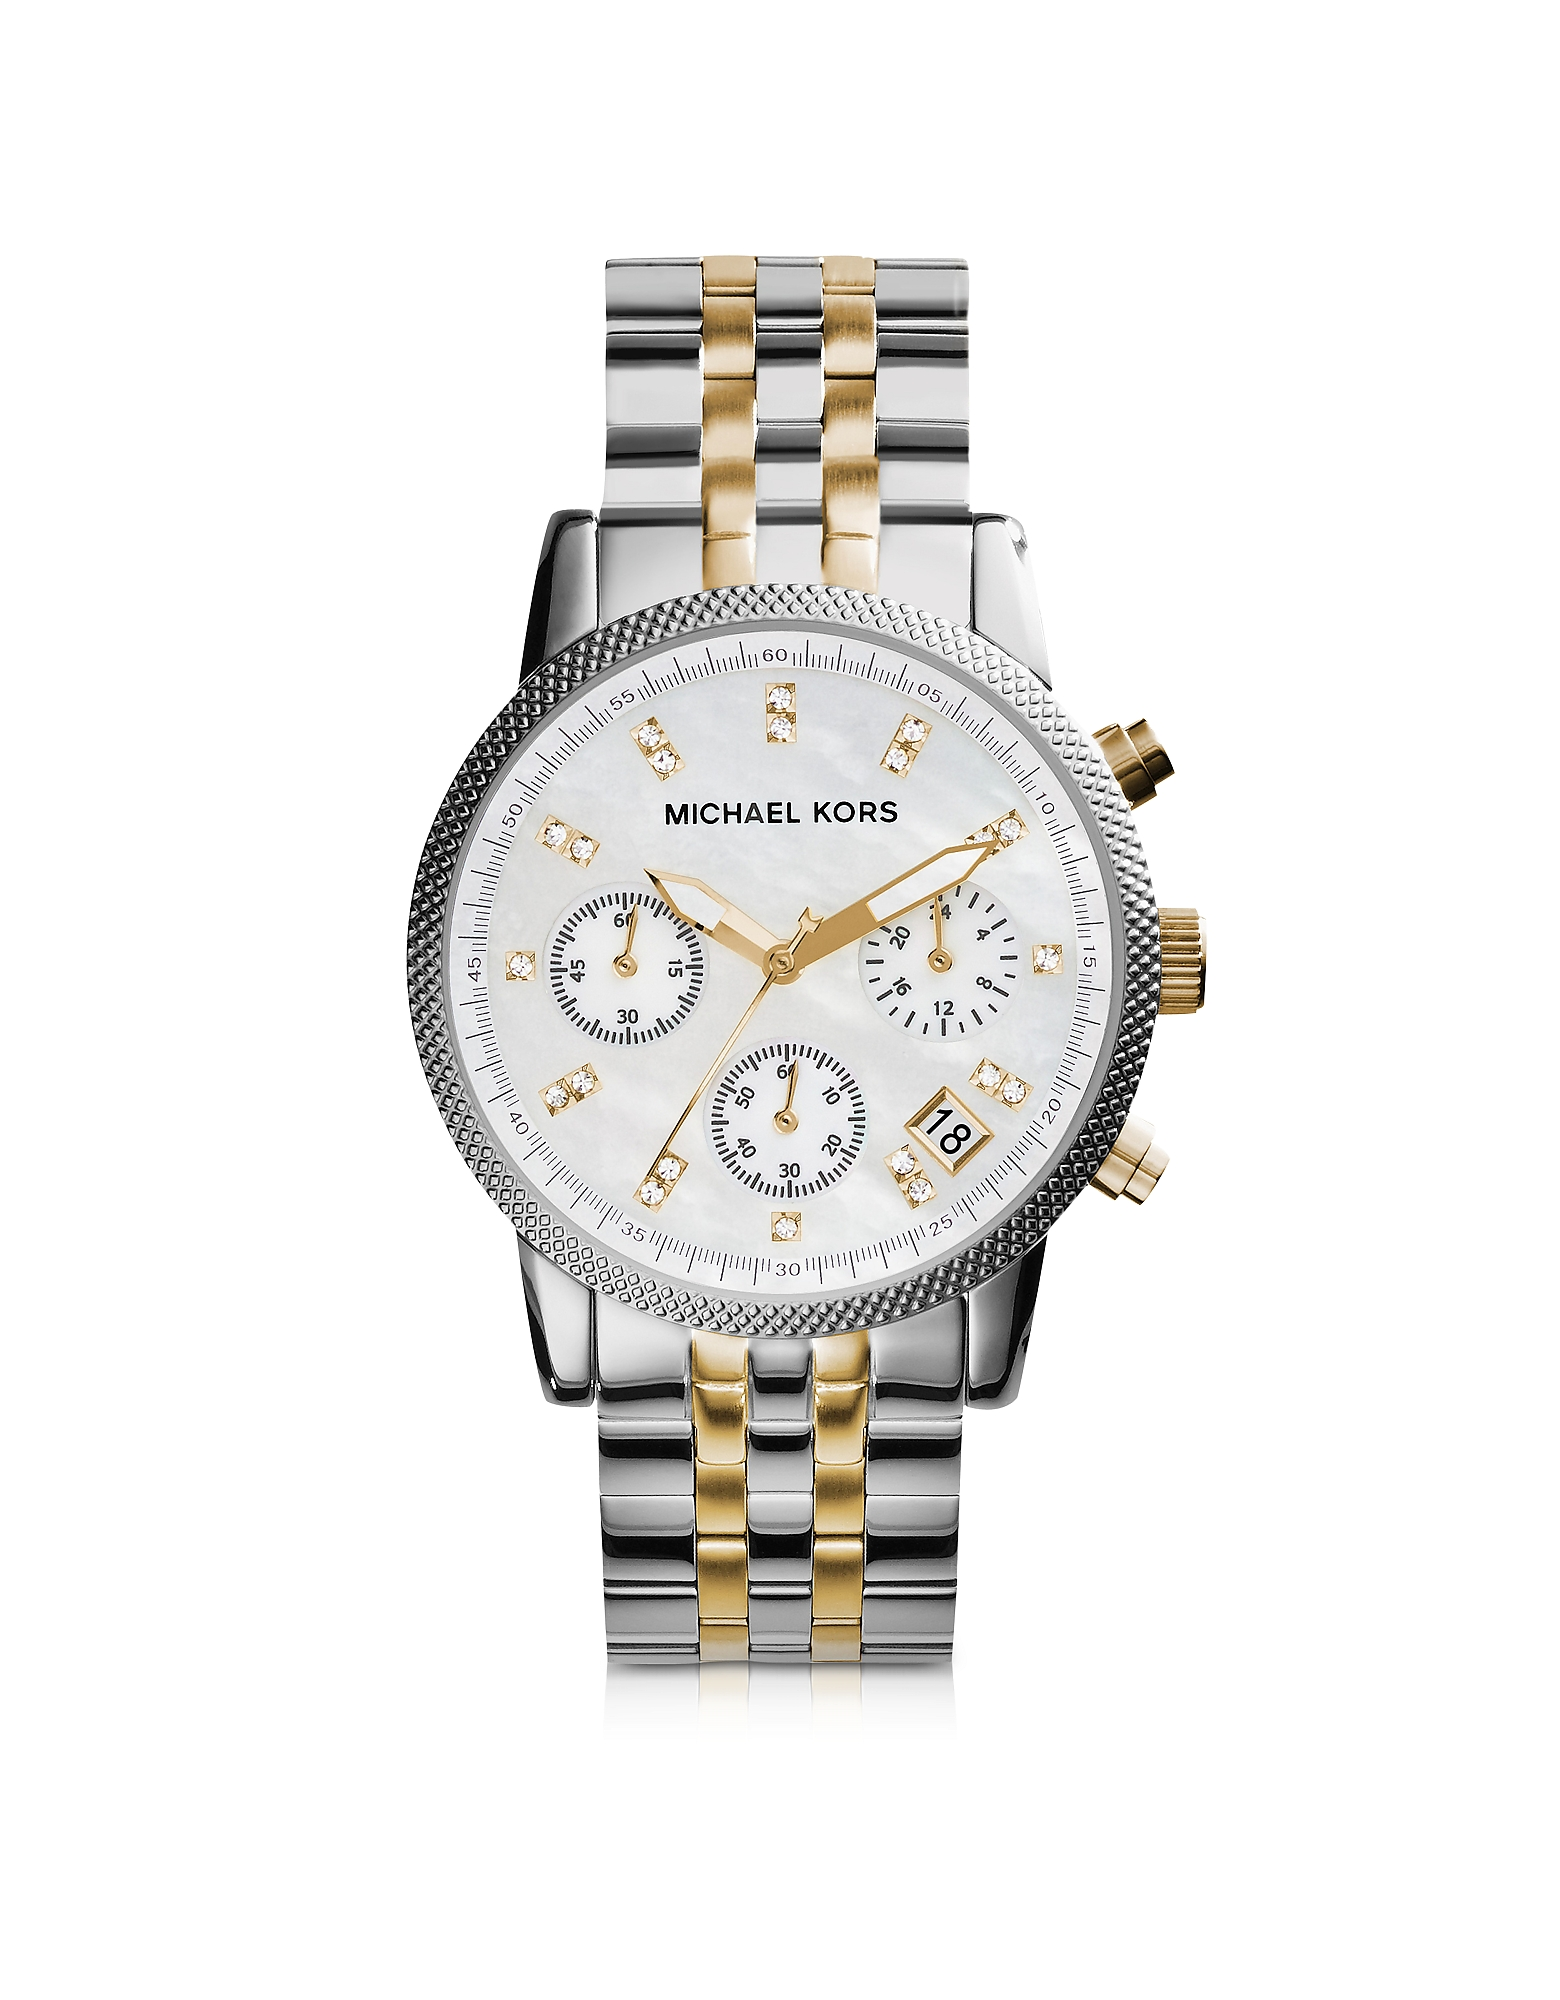 Michael Kors Women's Watches, Ritz Two Tone Stainless Steel Women's Watch